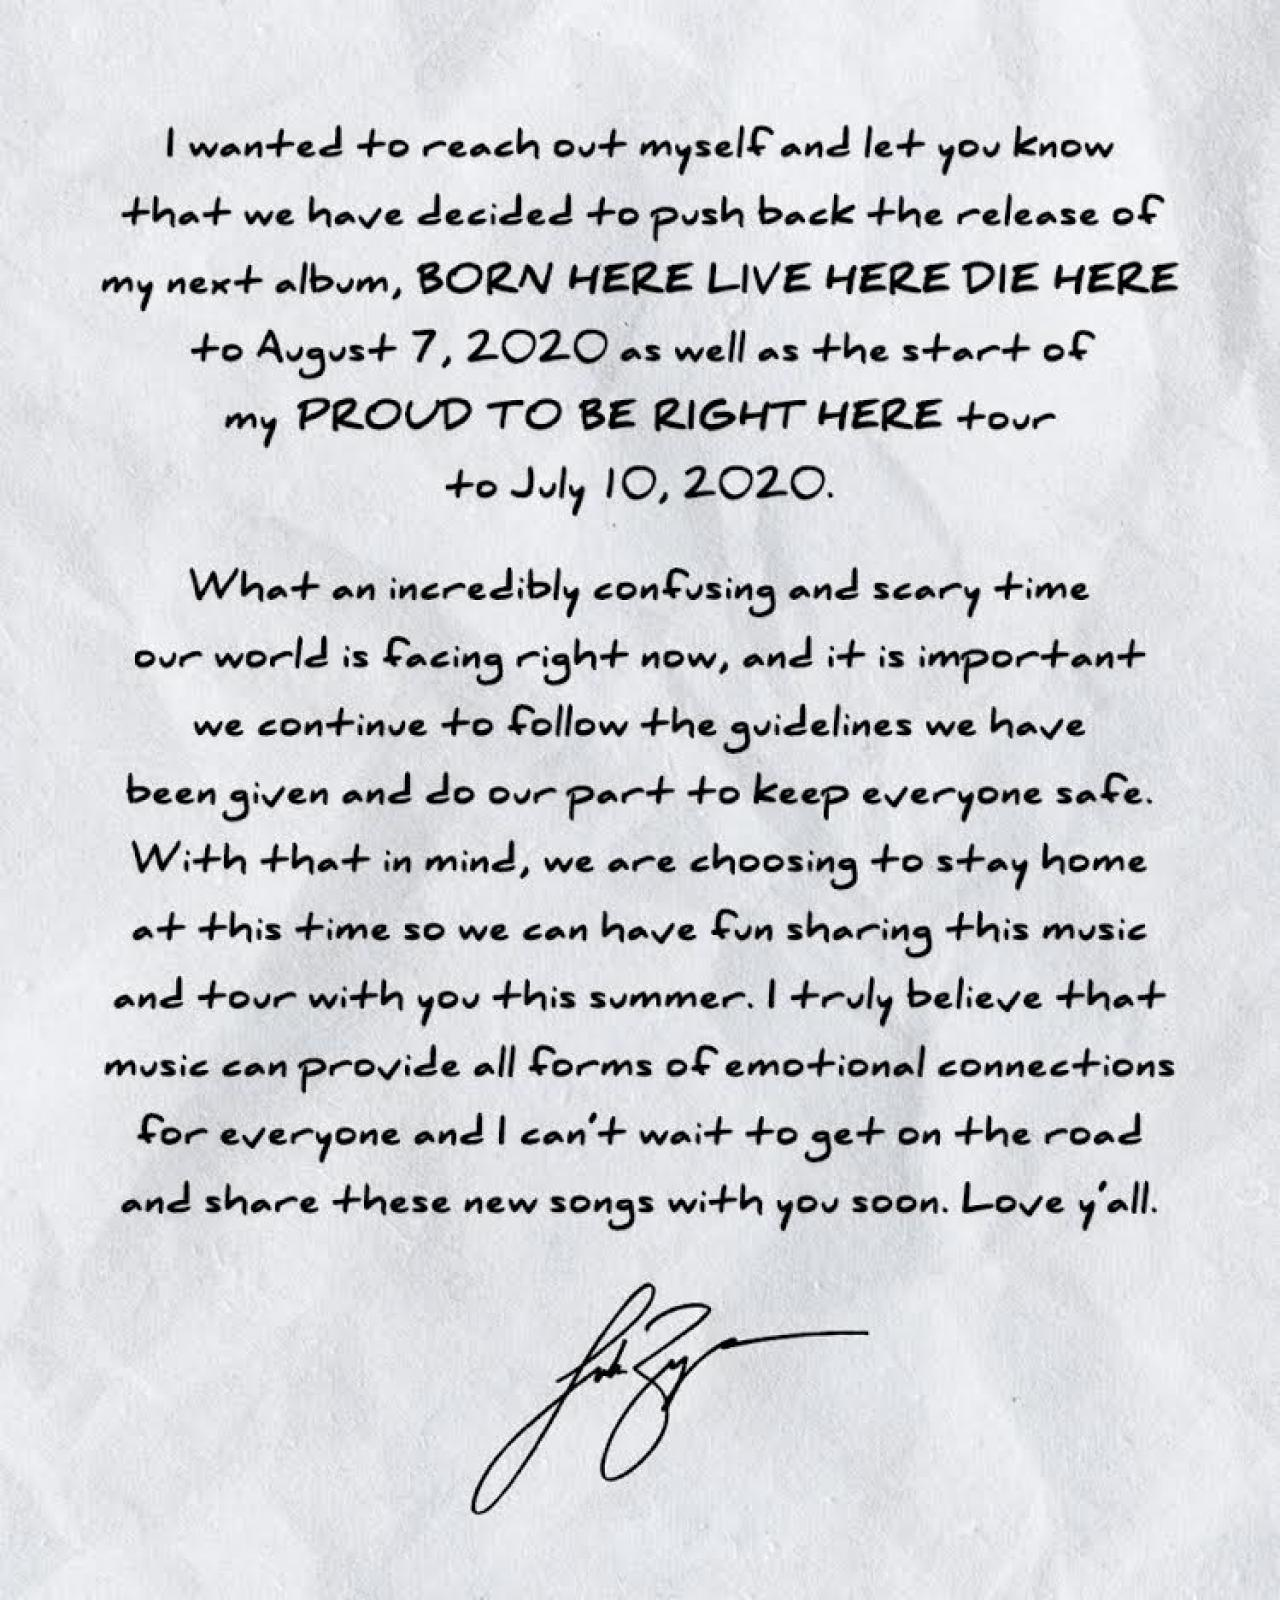 A note from Luke Bryan...